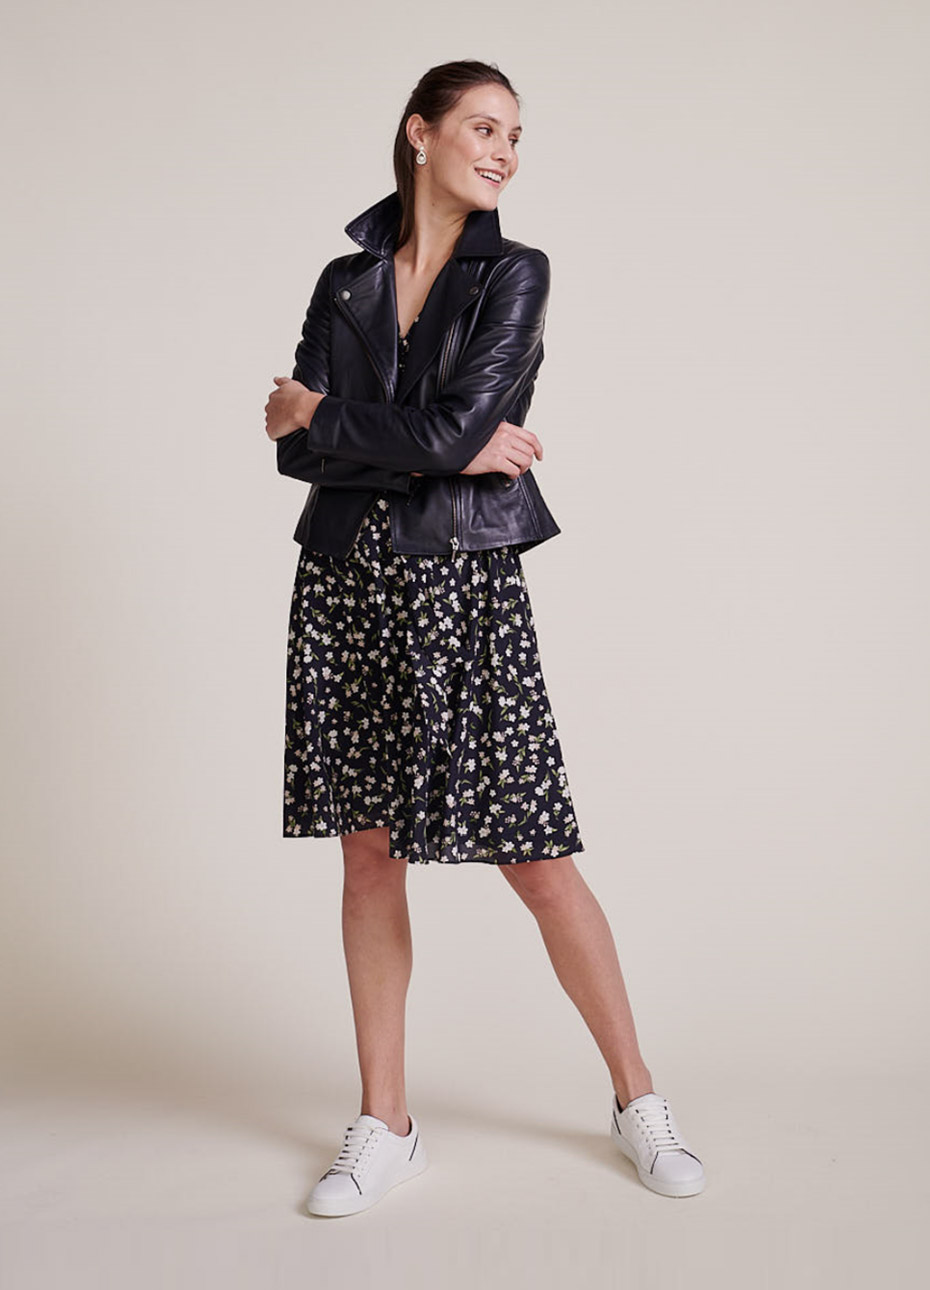 Hobbs model wearing a black leather jacket over a floral dress with white trainers.